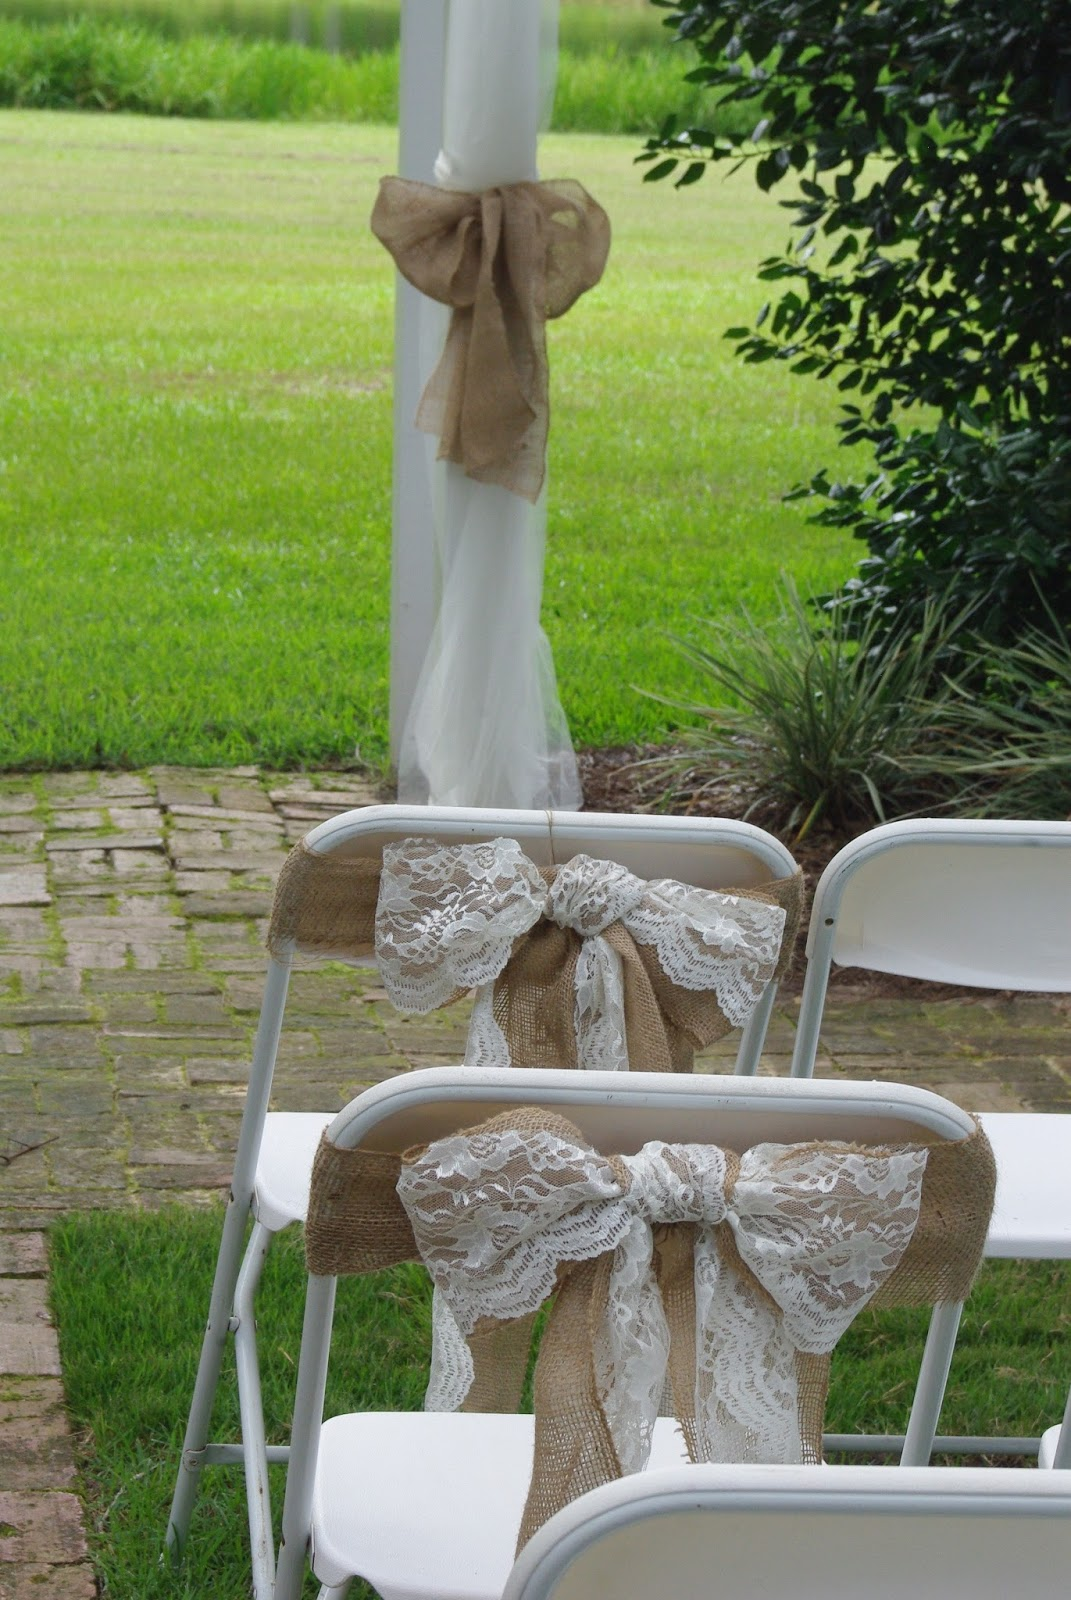 A Country Rose Tallahassee Florist: Wedding Flowers @ The